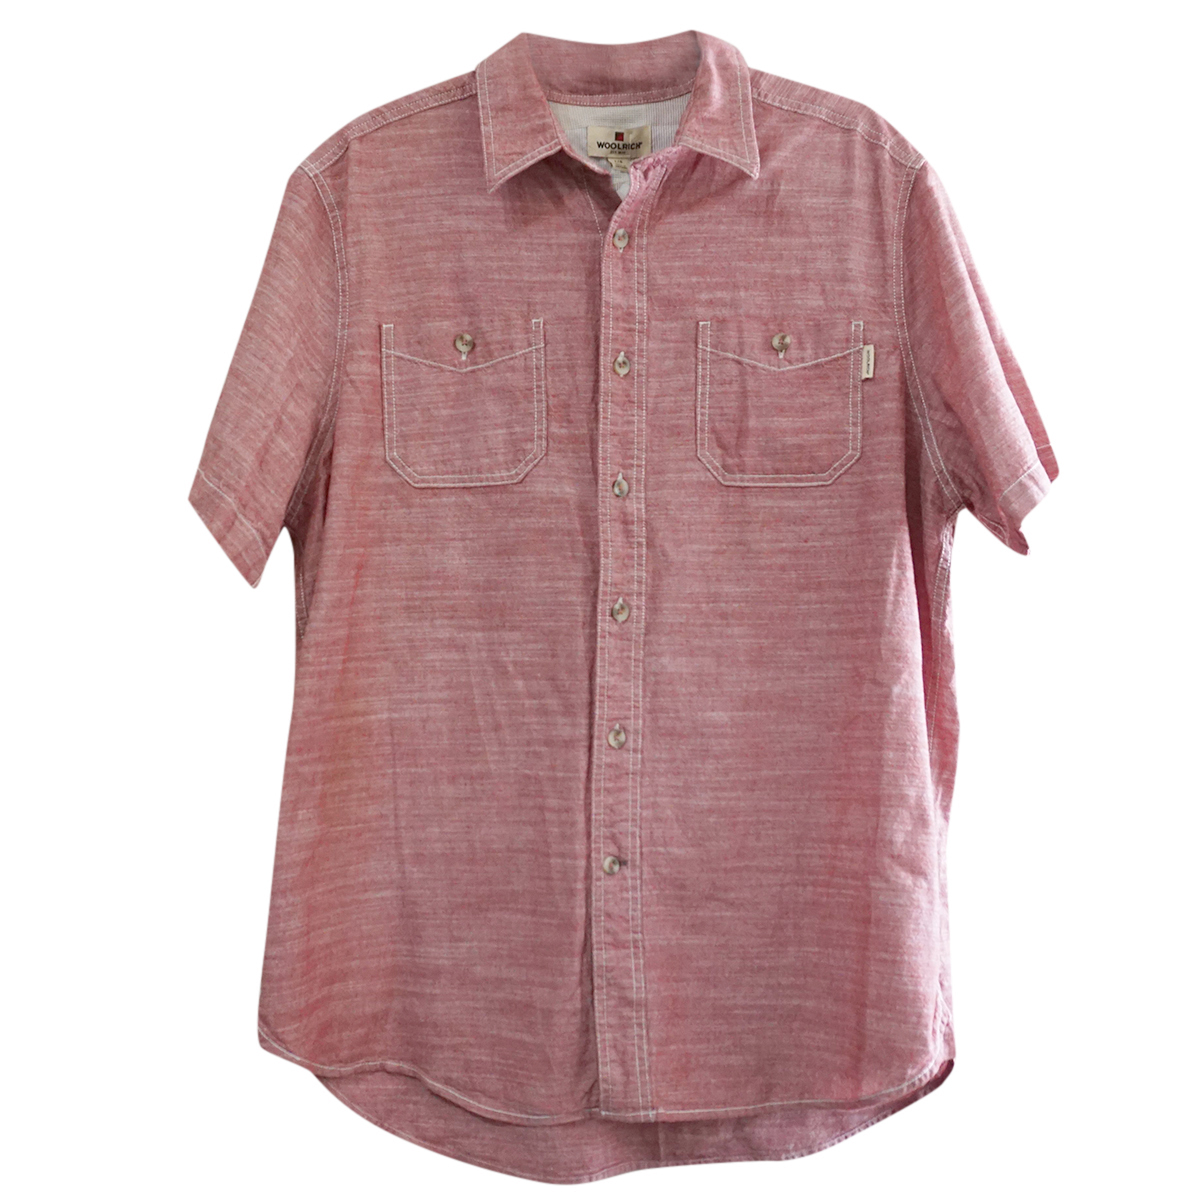 Woolrich Pink Melange Short Sleeved Button-Front Shirt